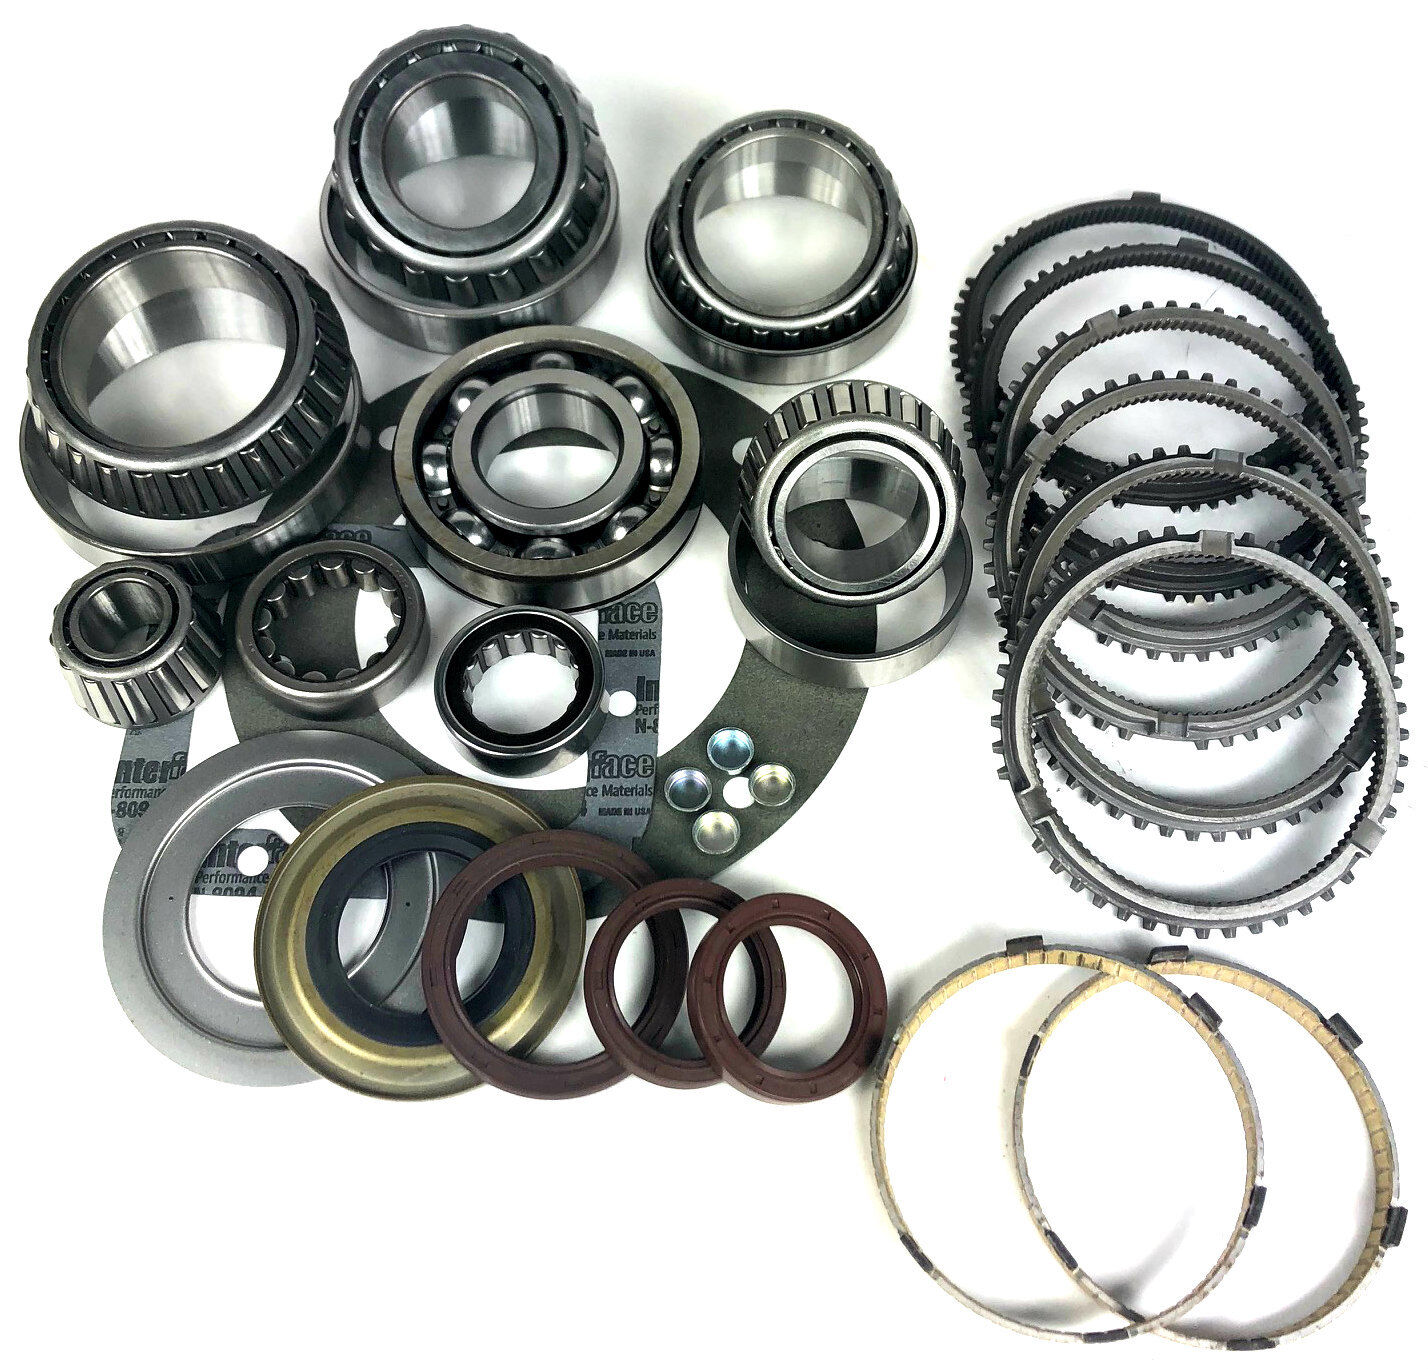 Ford ZF S6-650 6 Speed Transmission Rebuild Kit with Synchro Rings